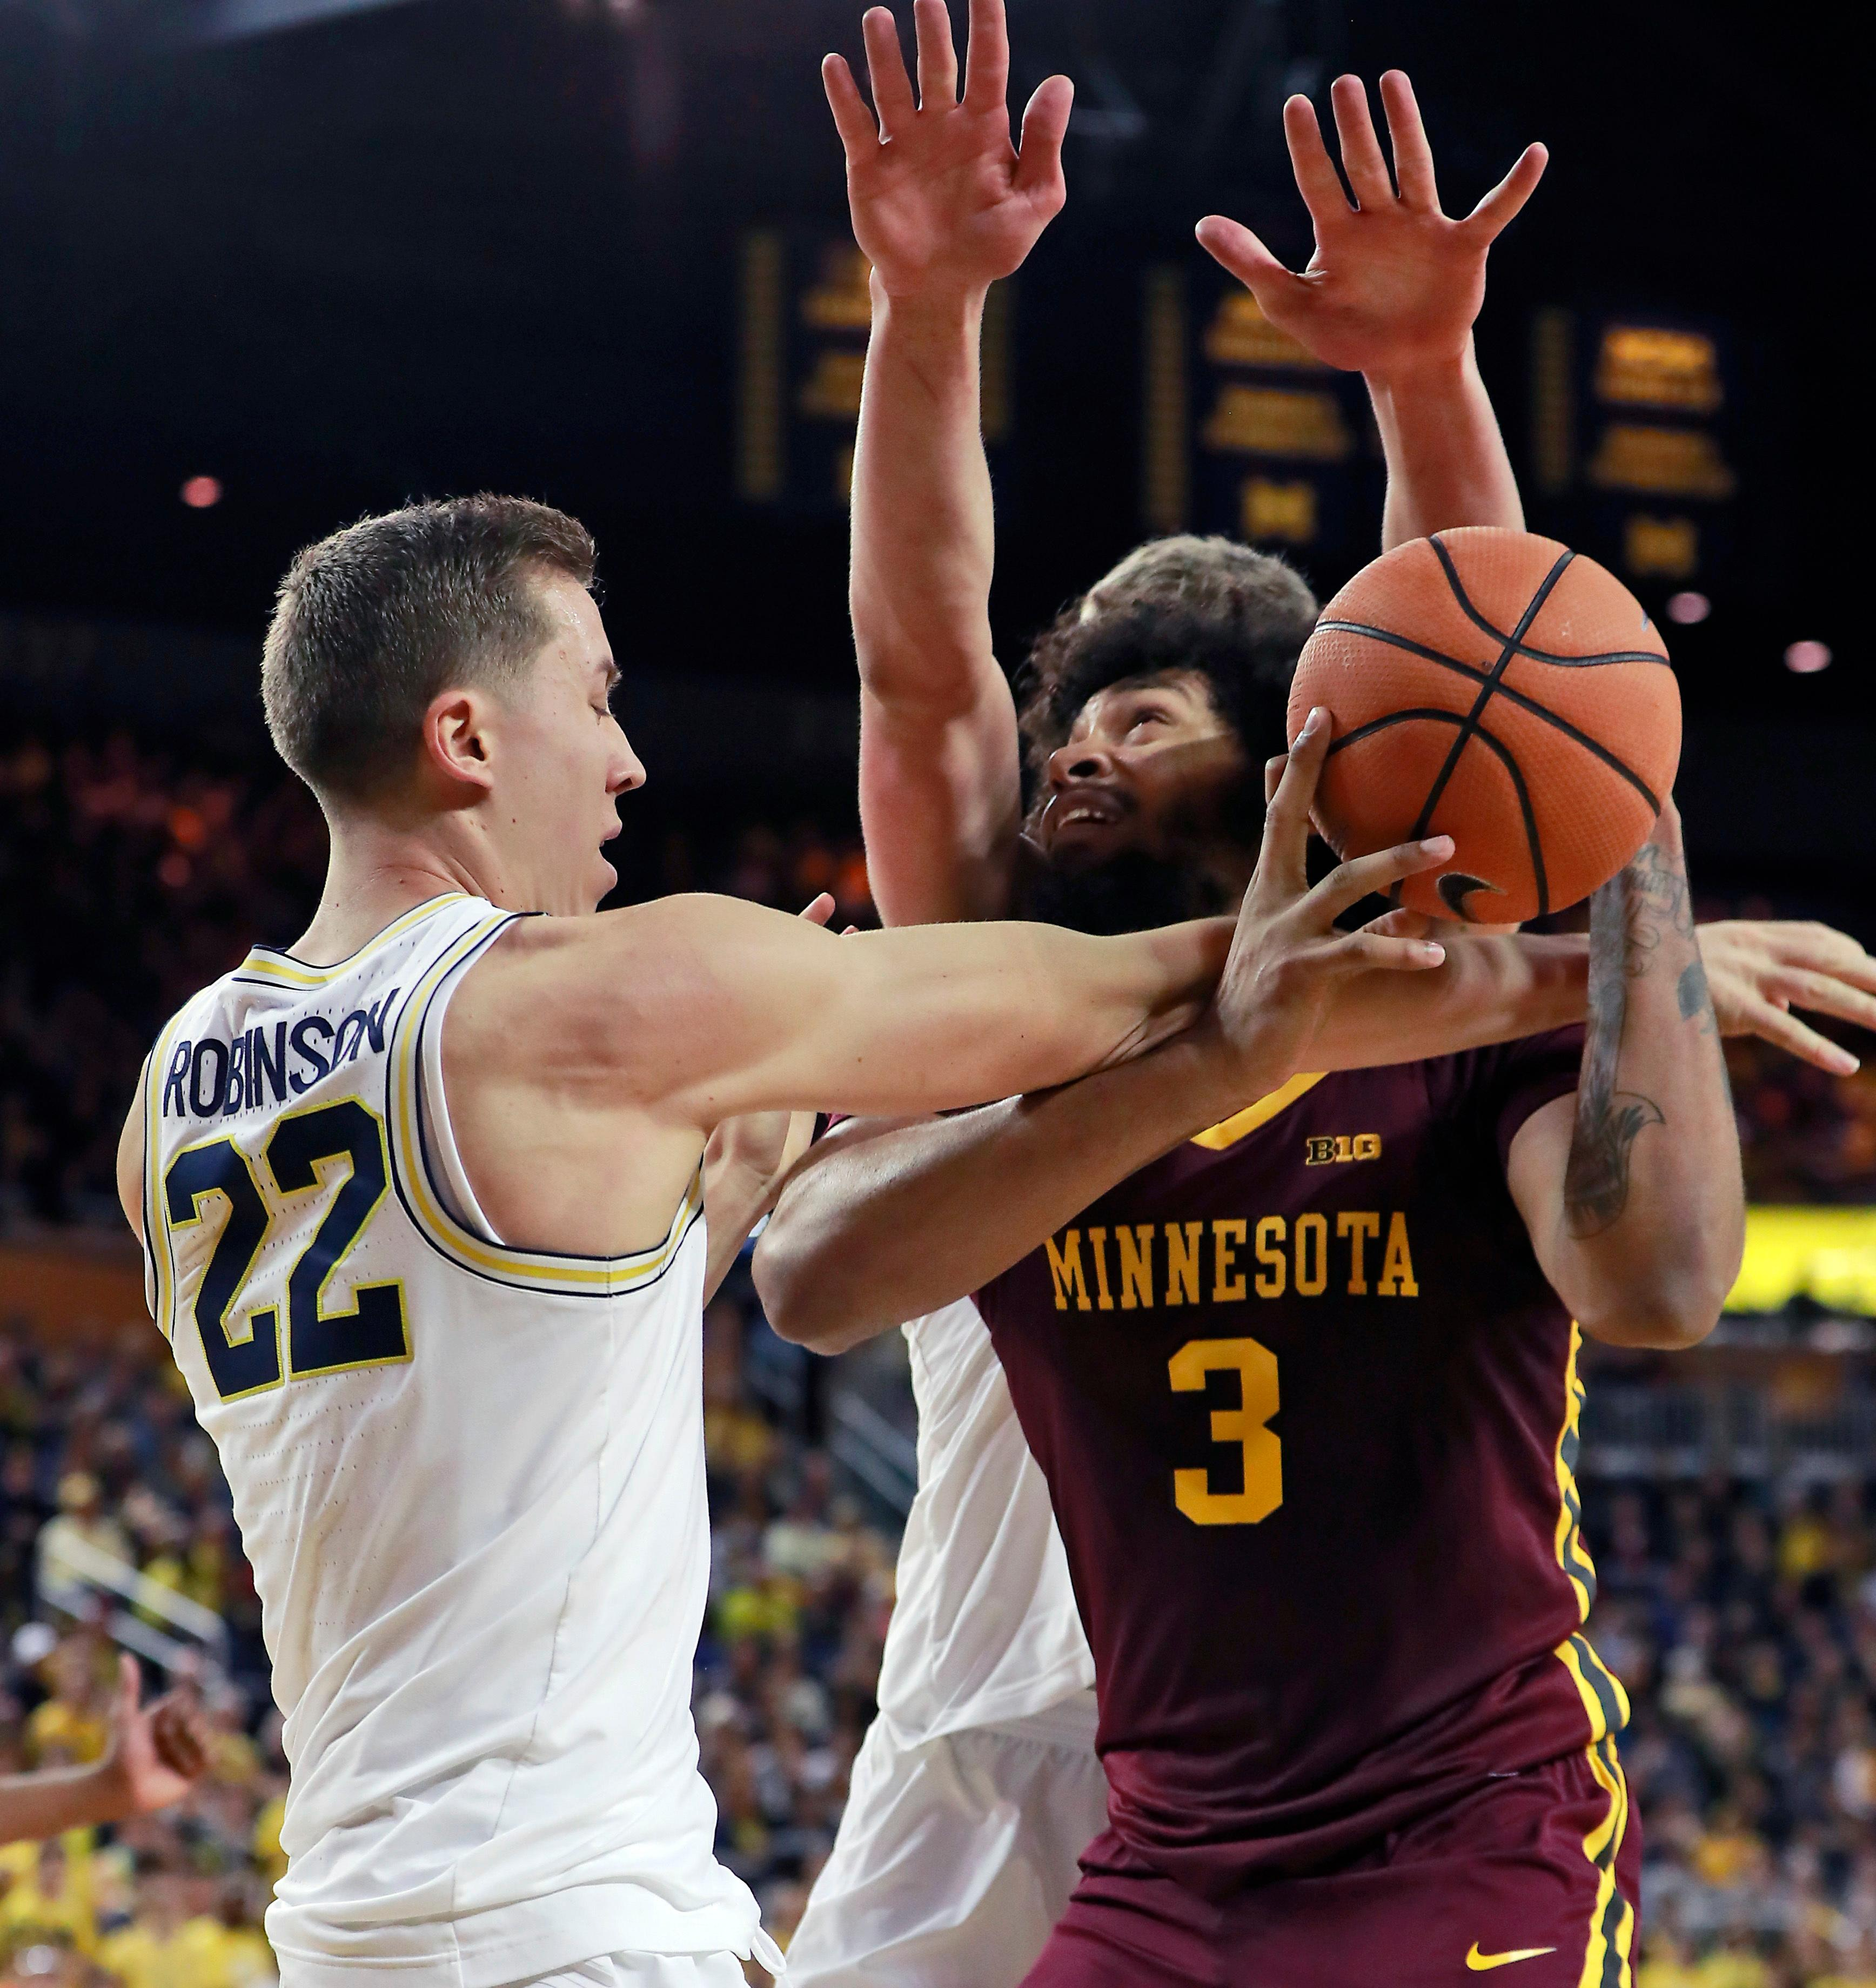 Michigan guard Duncan Robinson (22) reaches in and fouls Minnesota forward Jordan Murphy (3) during the first half of an NCAA college basketball game, Saturday, Feb. 3,2018, in Ann Arbor, Mich. (AP Photo/Carlos Osorio)